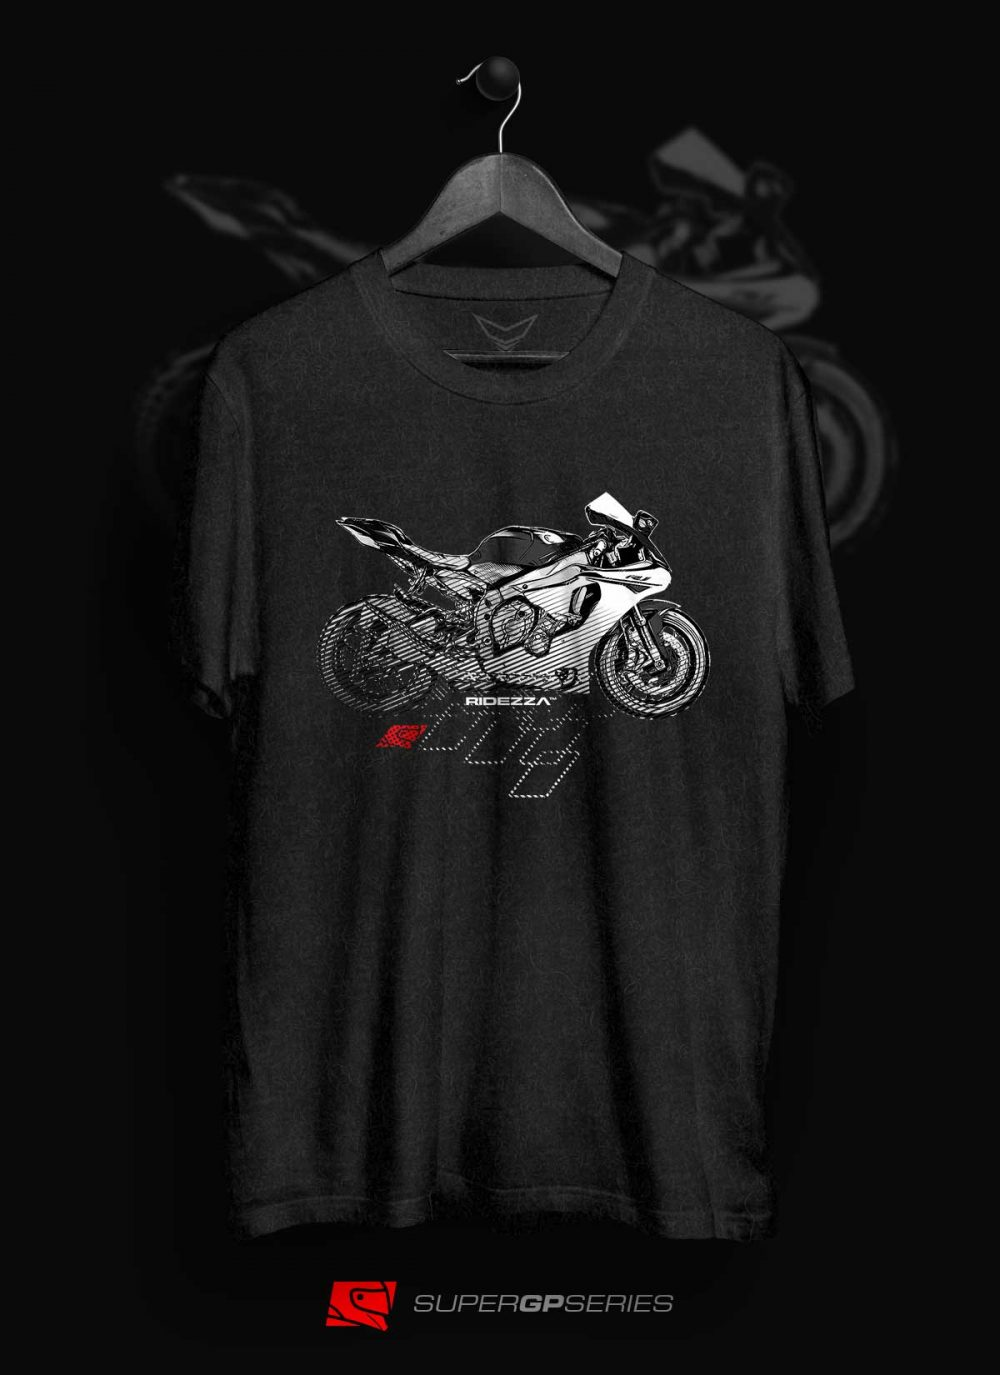 Ridezza YZF-R1 SuperGP Series [New Model] T-Shirt